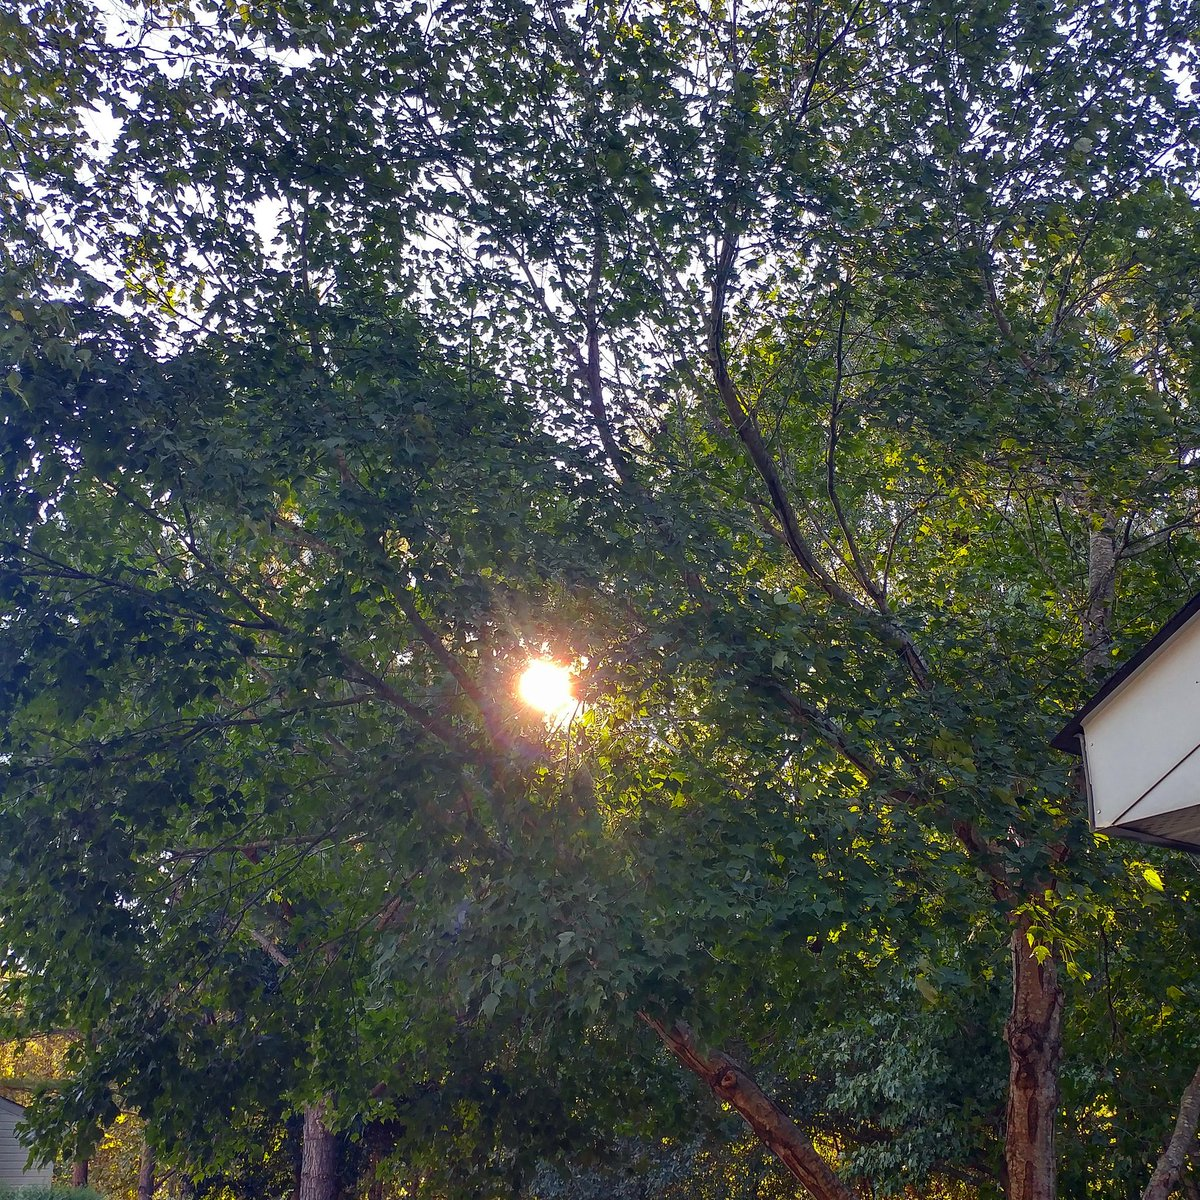 Sister Toldjah 🤔 on Twitter: Has been a beautiful #fall morning in Charlotte. Cooler temperatures. Light breeze. Perfect day for apple cider and a pumpkin spice muffin. 🍂🍁🍃  #autumn #cltwx #TGIF #nature…